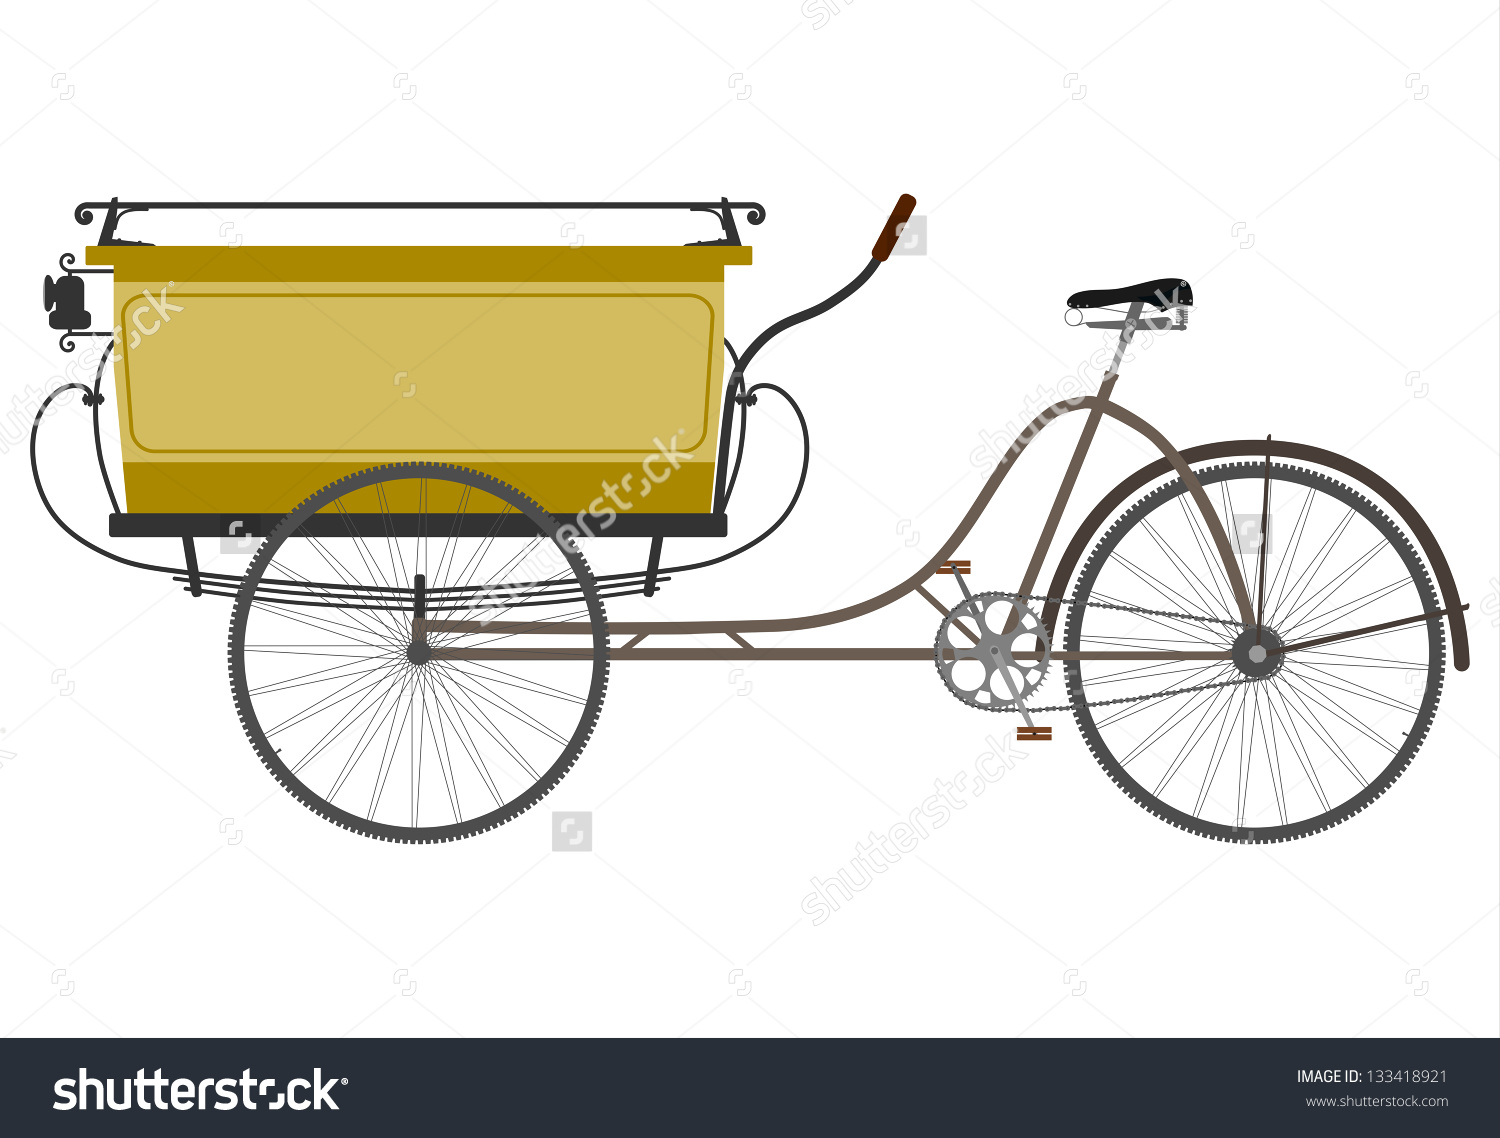 Silhouette Of An Old Utility Tricycle On A White Background. Stock.